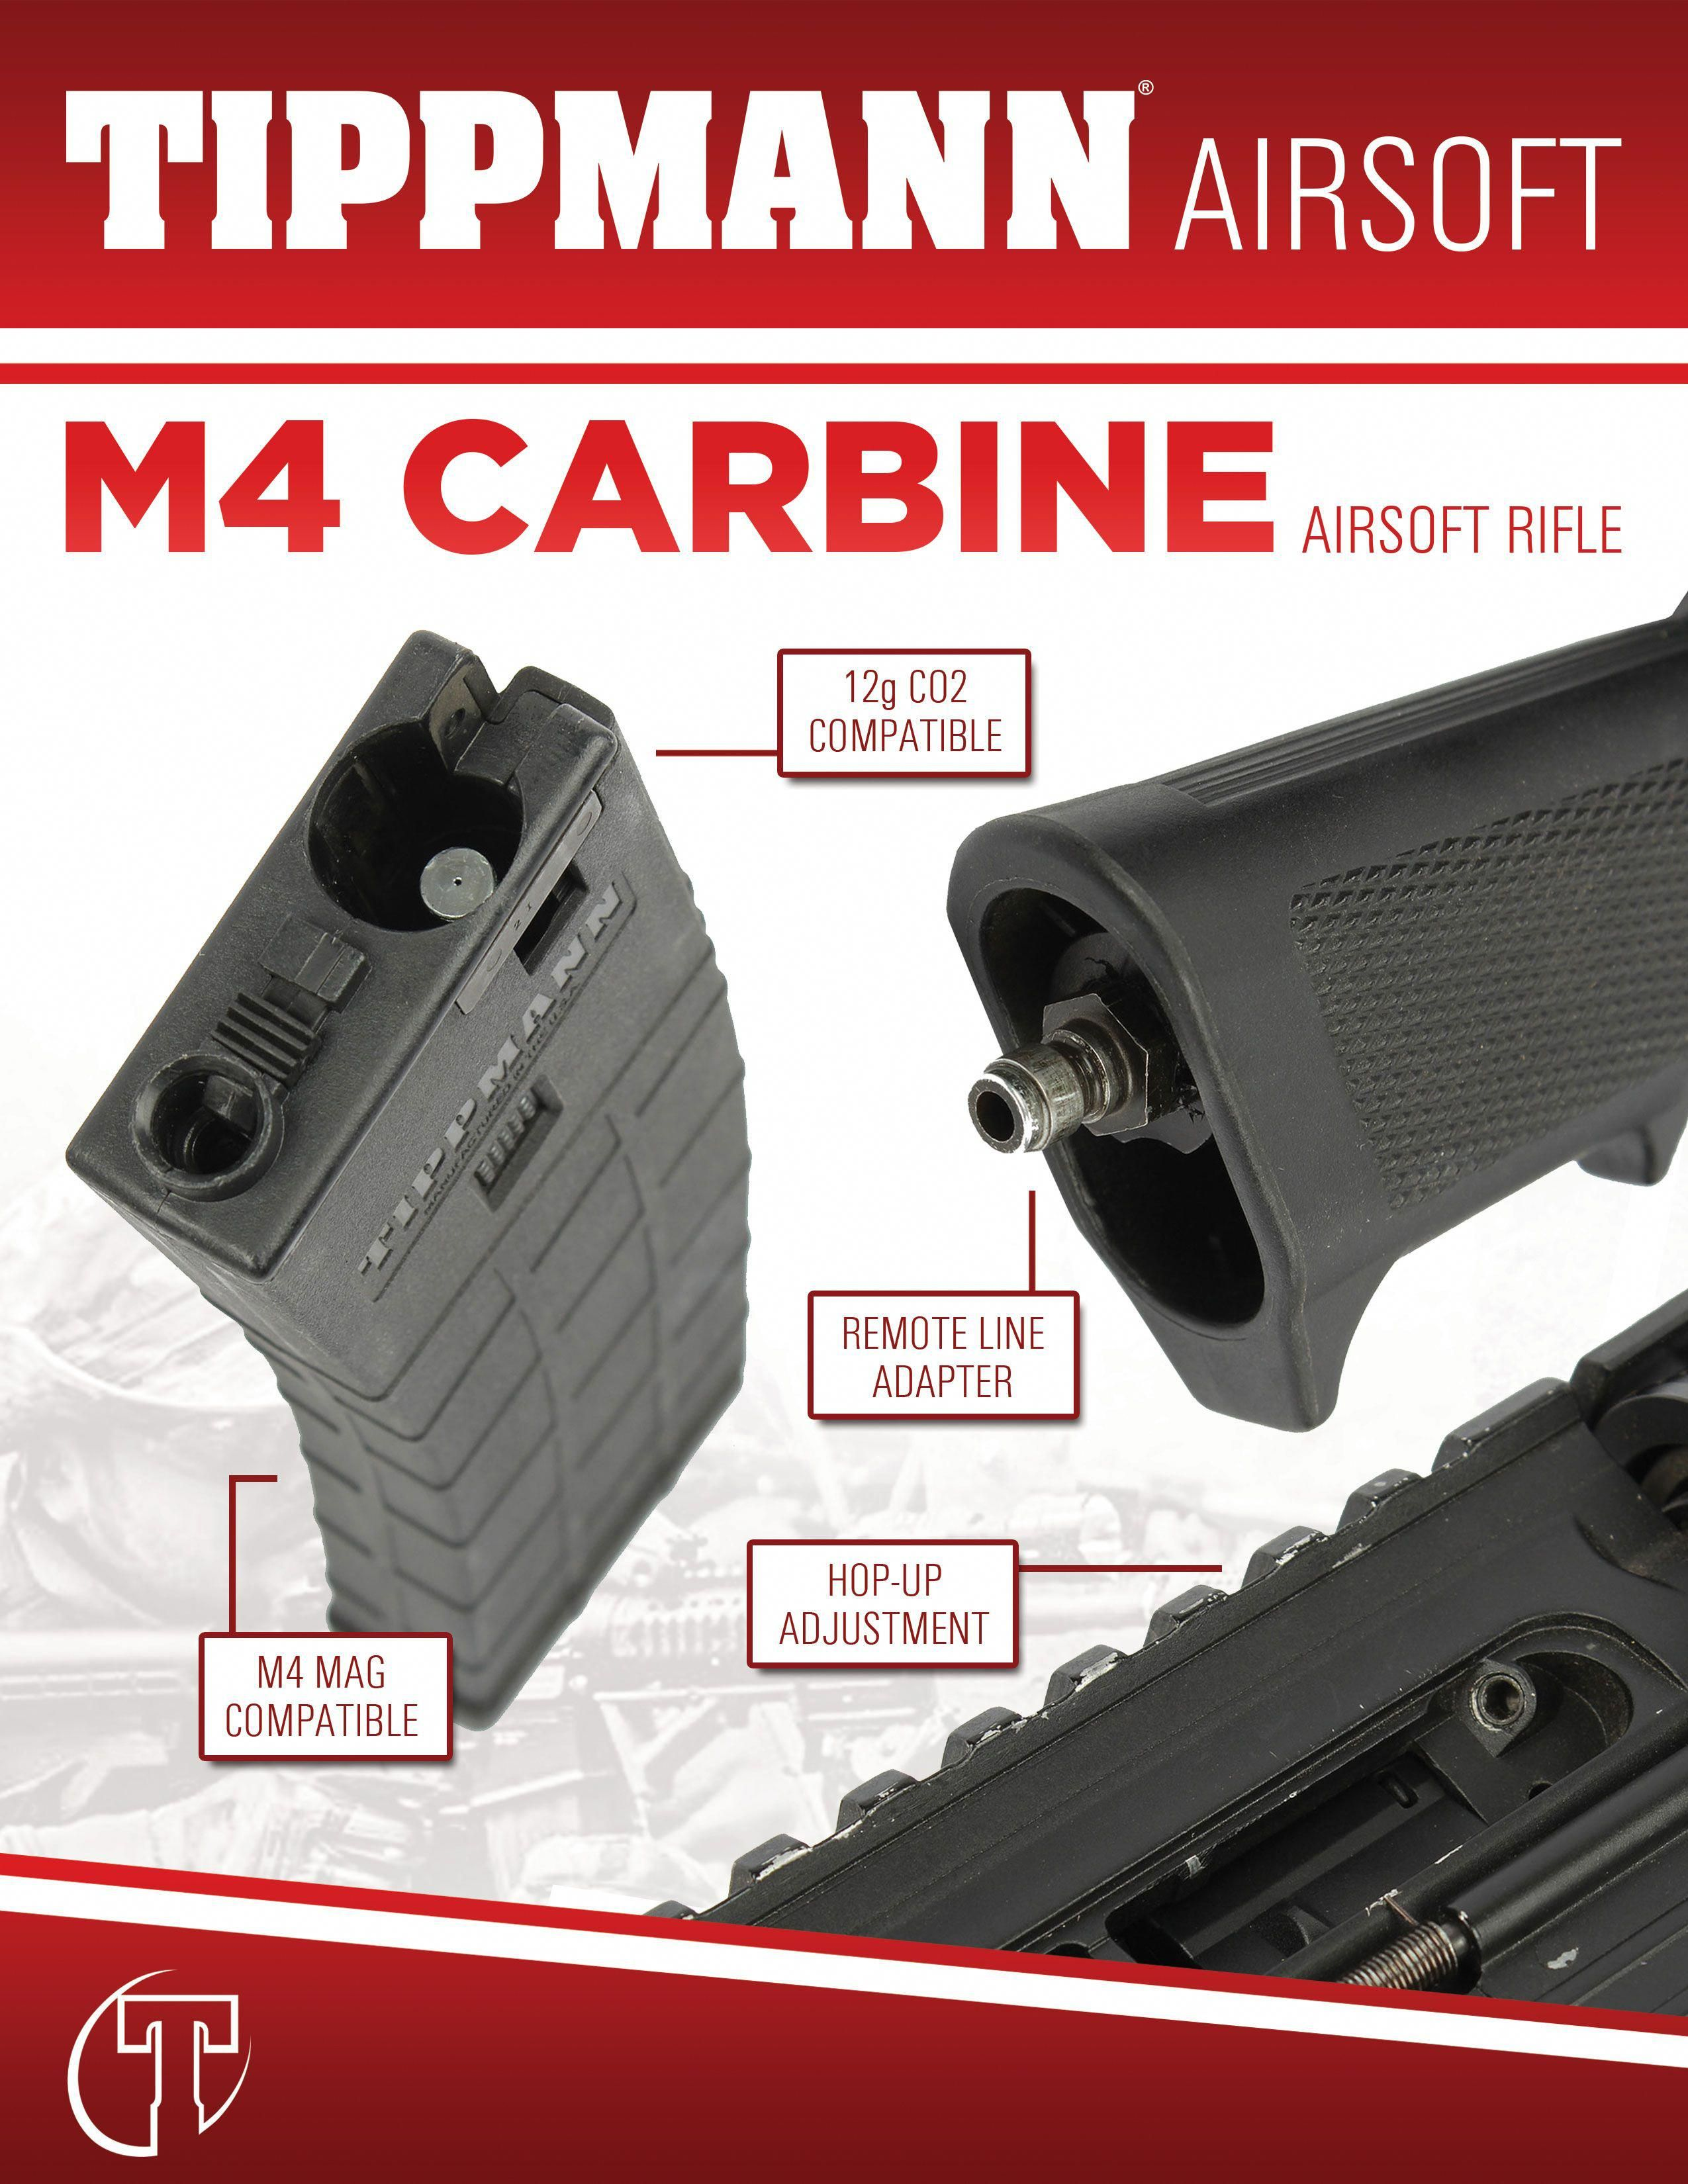 The ALL NEW Tippmann M4 Carbine Airsoft Rifle  CO2 or HPA